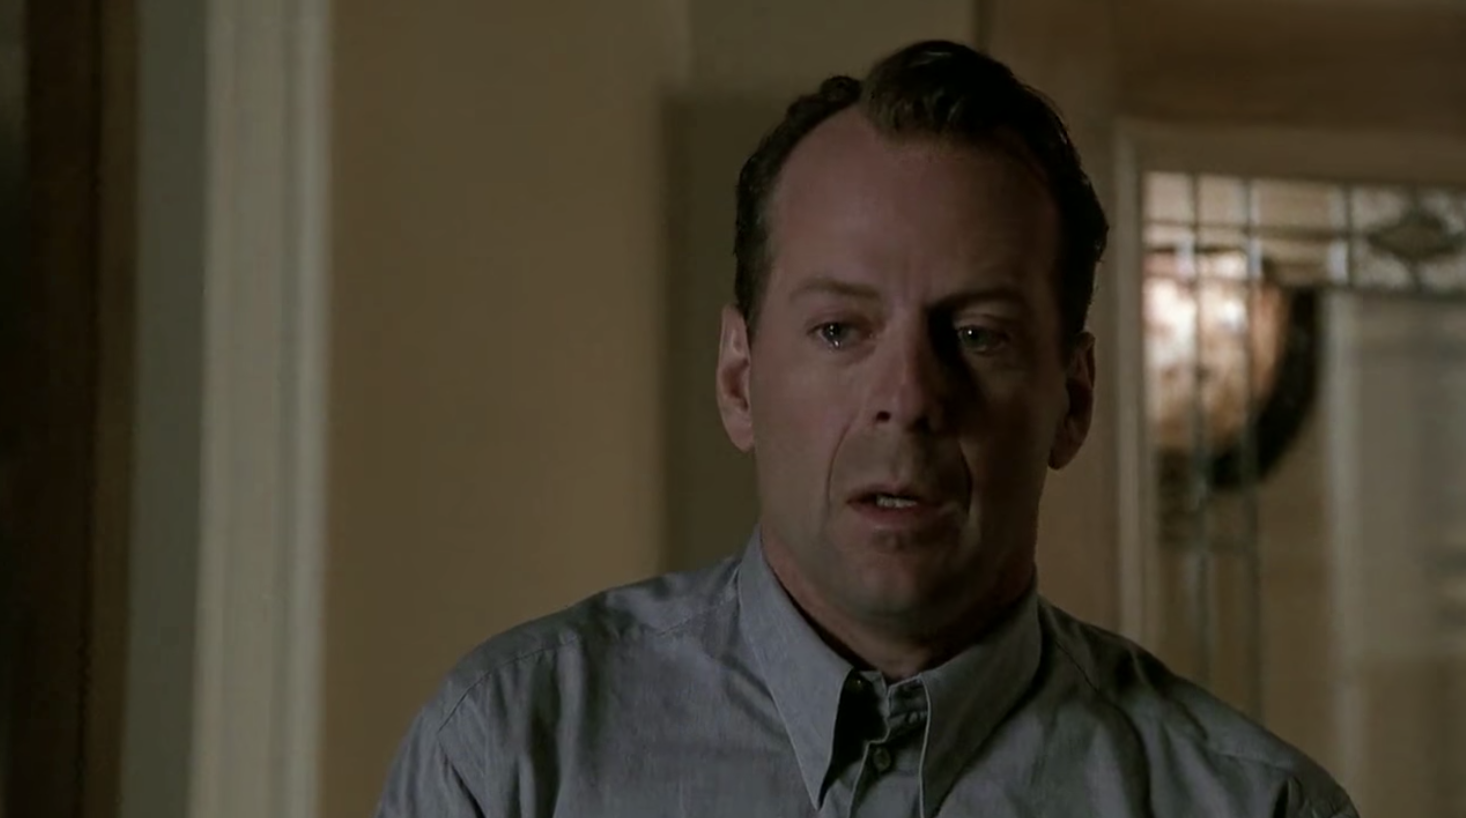 Bruce Willis at the end of The Sixth Sense